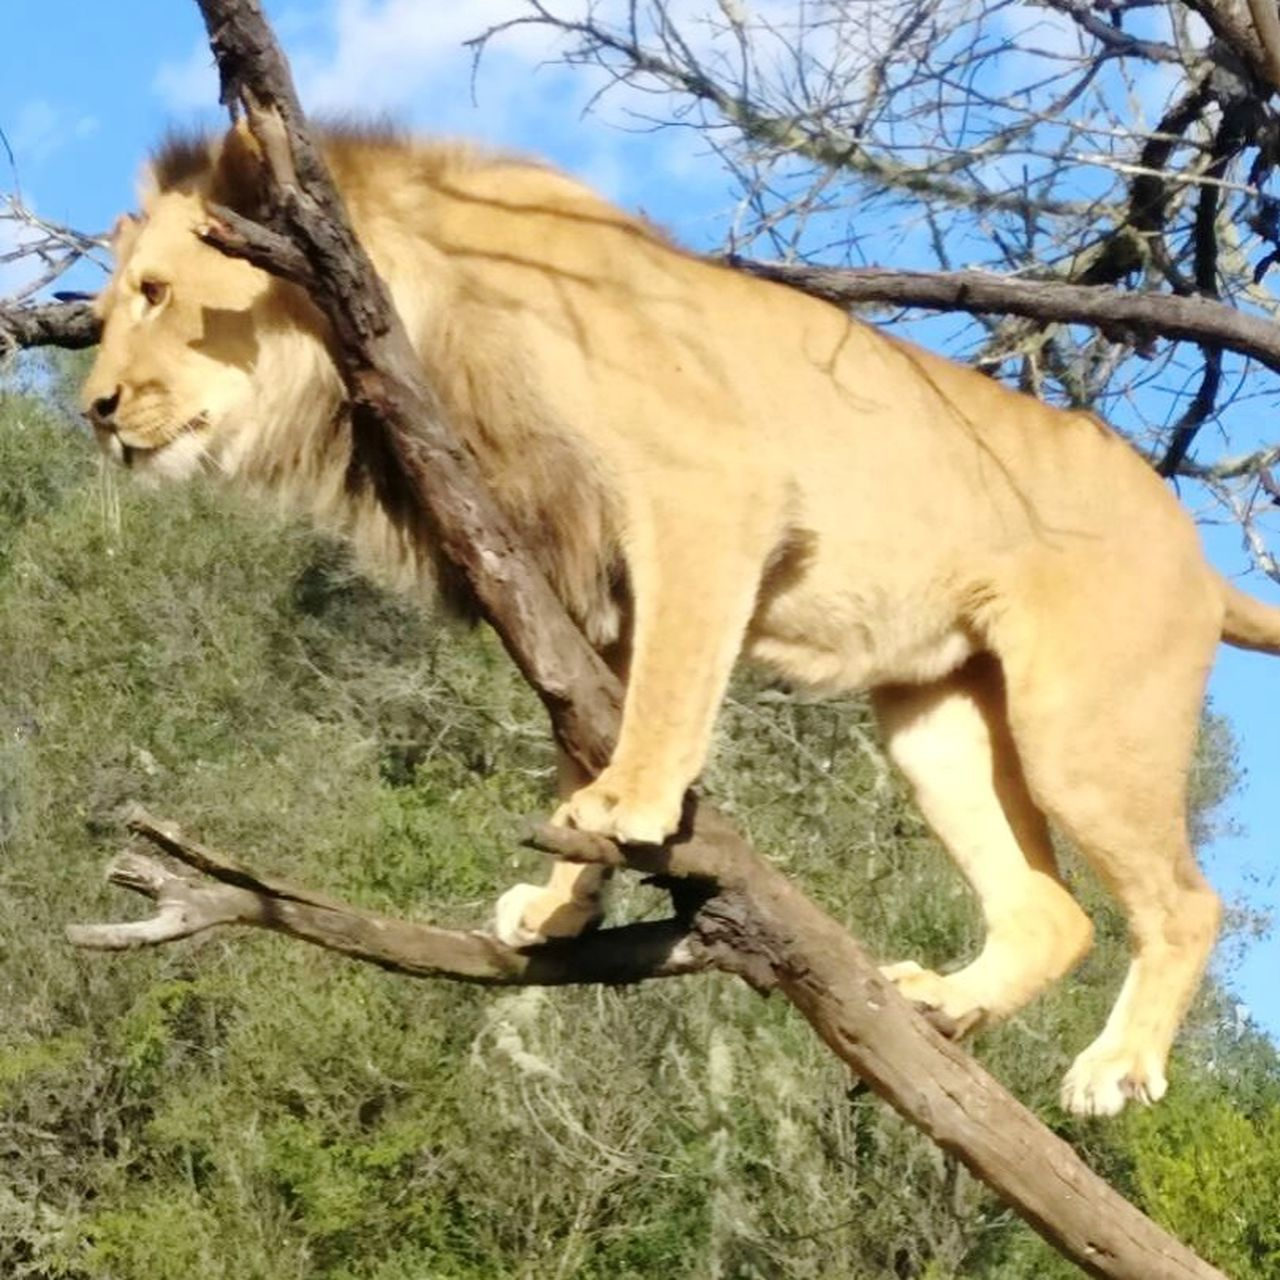 One Animal Animal Themes Mammal Day Domestic Animals No People Full Length Outdoors Tree Nature Sky Outdoor Photography Lion Lion King  Lion King  Lions Travel Destinations EyeEmNewHere Lioness Nature Animal Wildlife Animals In The Wild